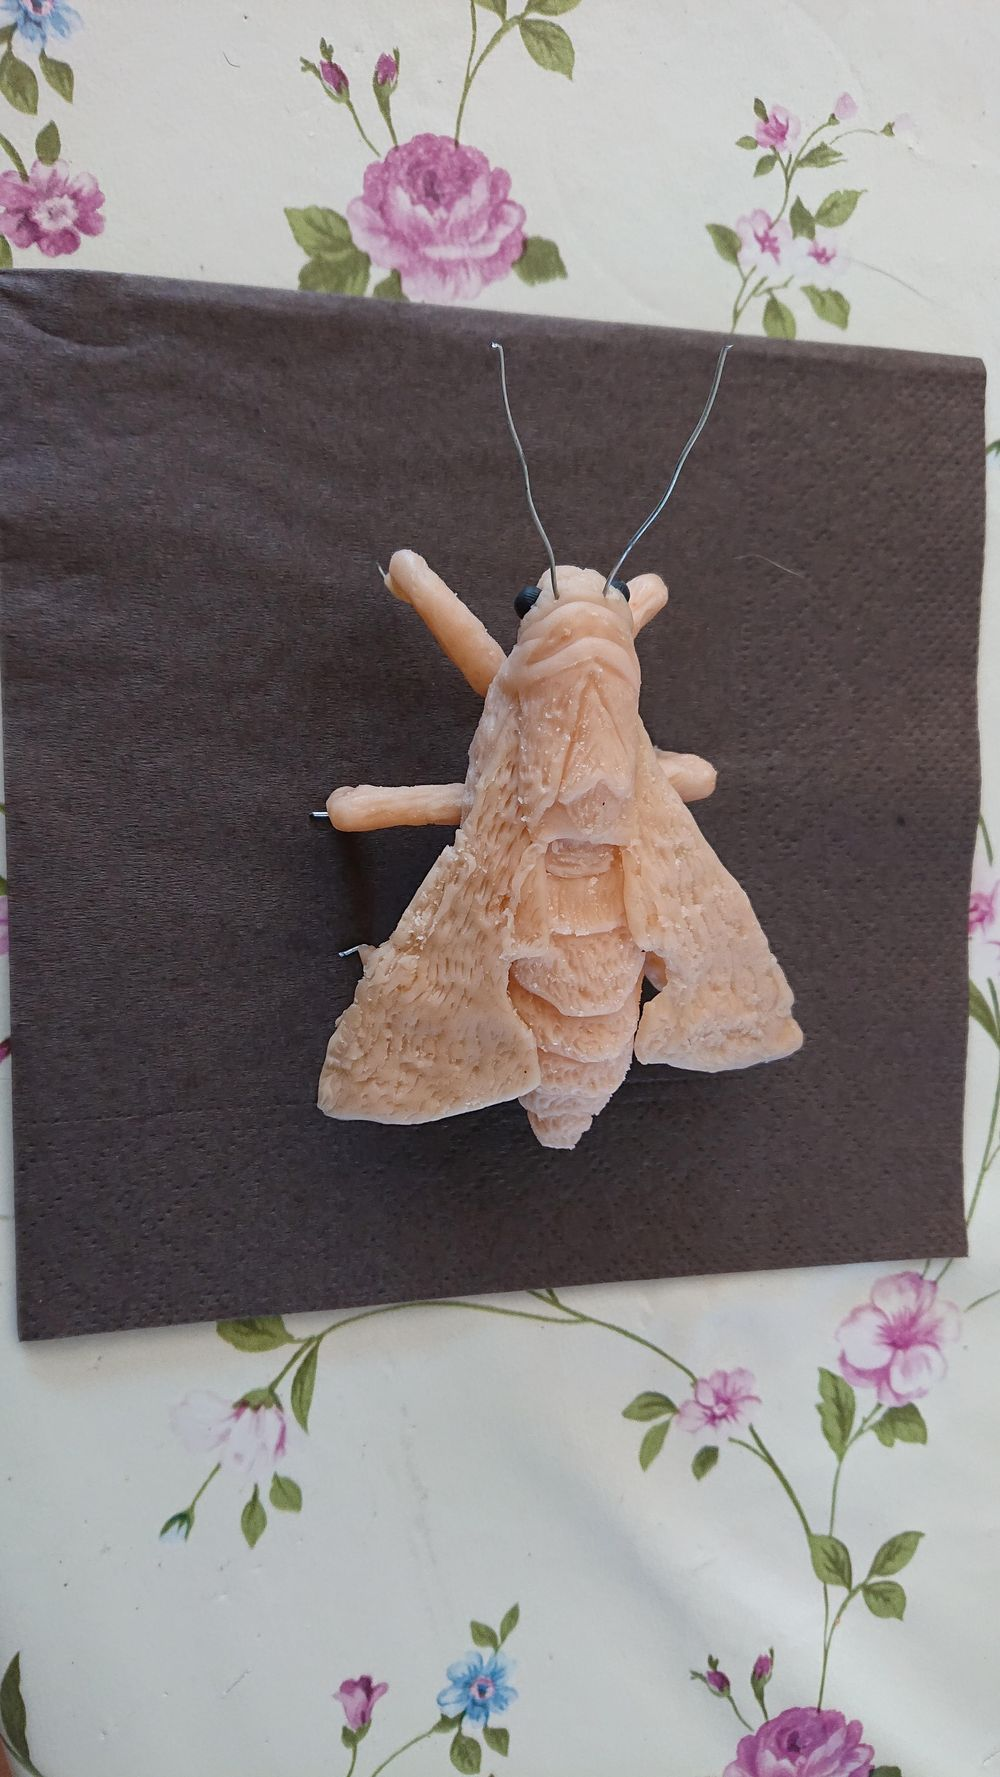 Unpainted Moth - image 2 - student project